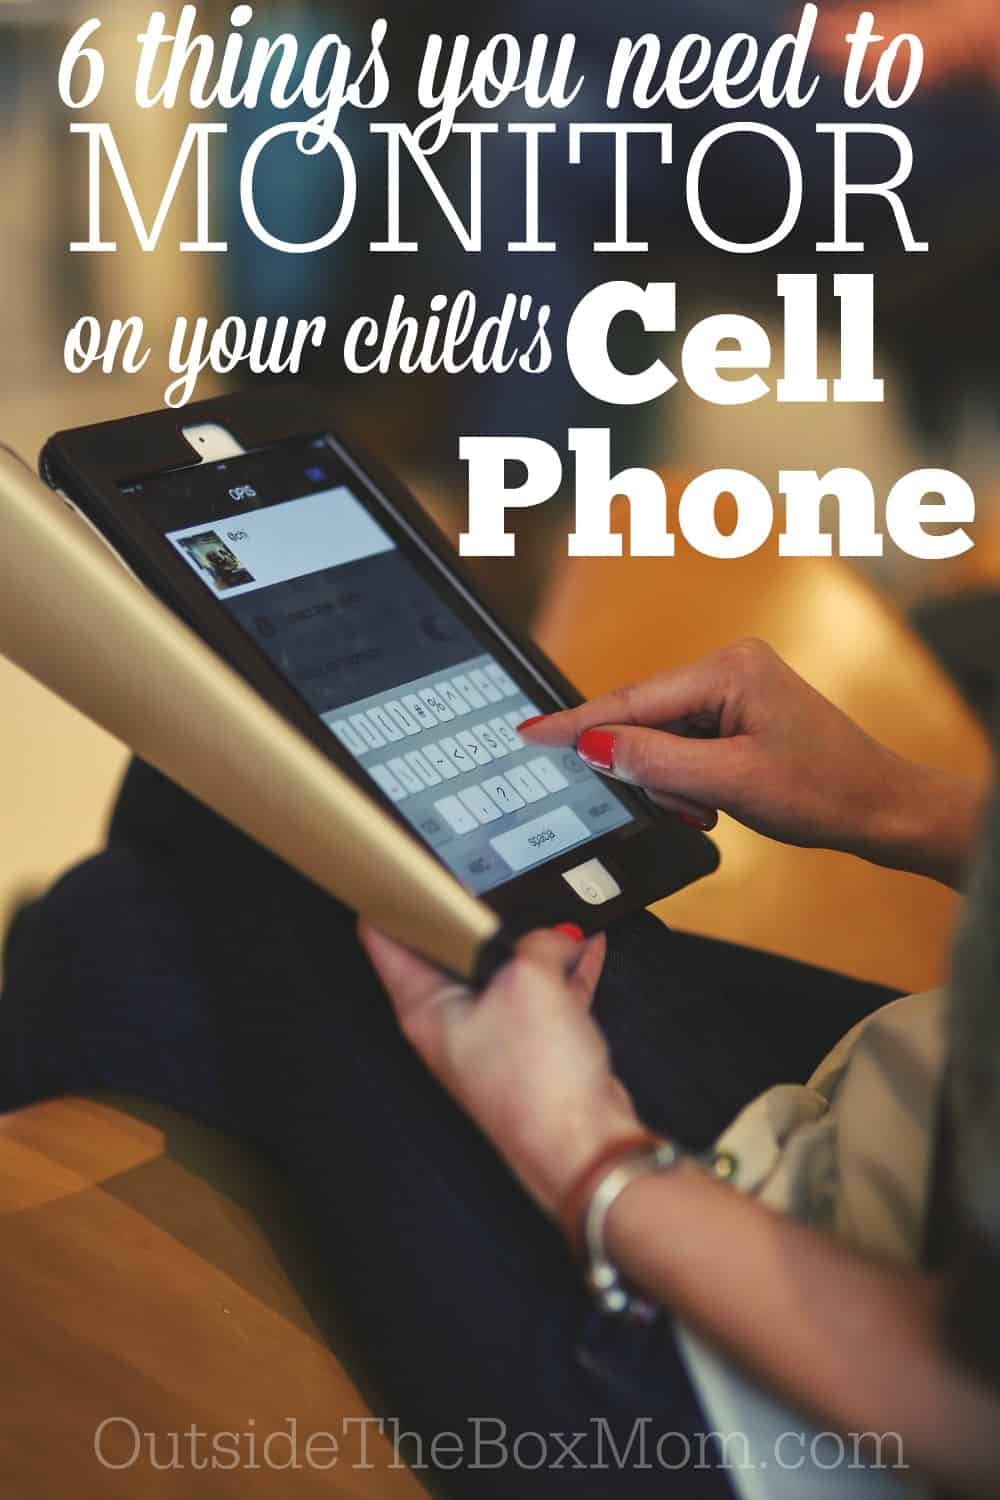 Do you know what your child does on his or her cell phone? Do you monitor their behavior? We have put together a set of tips and tricks for parents who are either digitally challenged or tech savvy. Here are 6 Things You Need to Monitor on Your Child's Cell Phone.